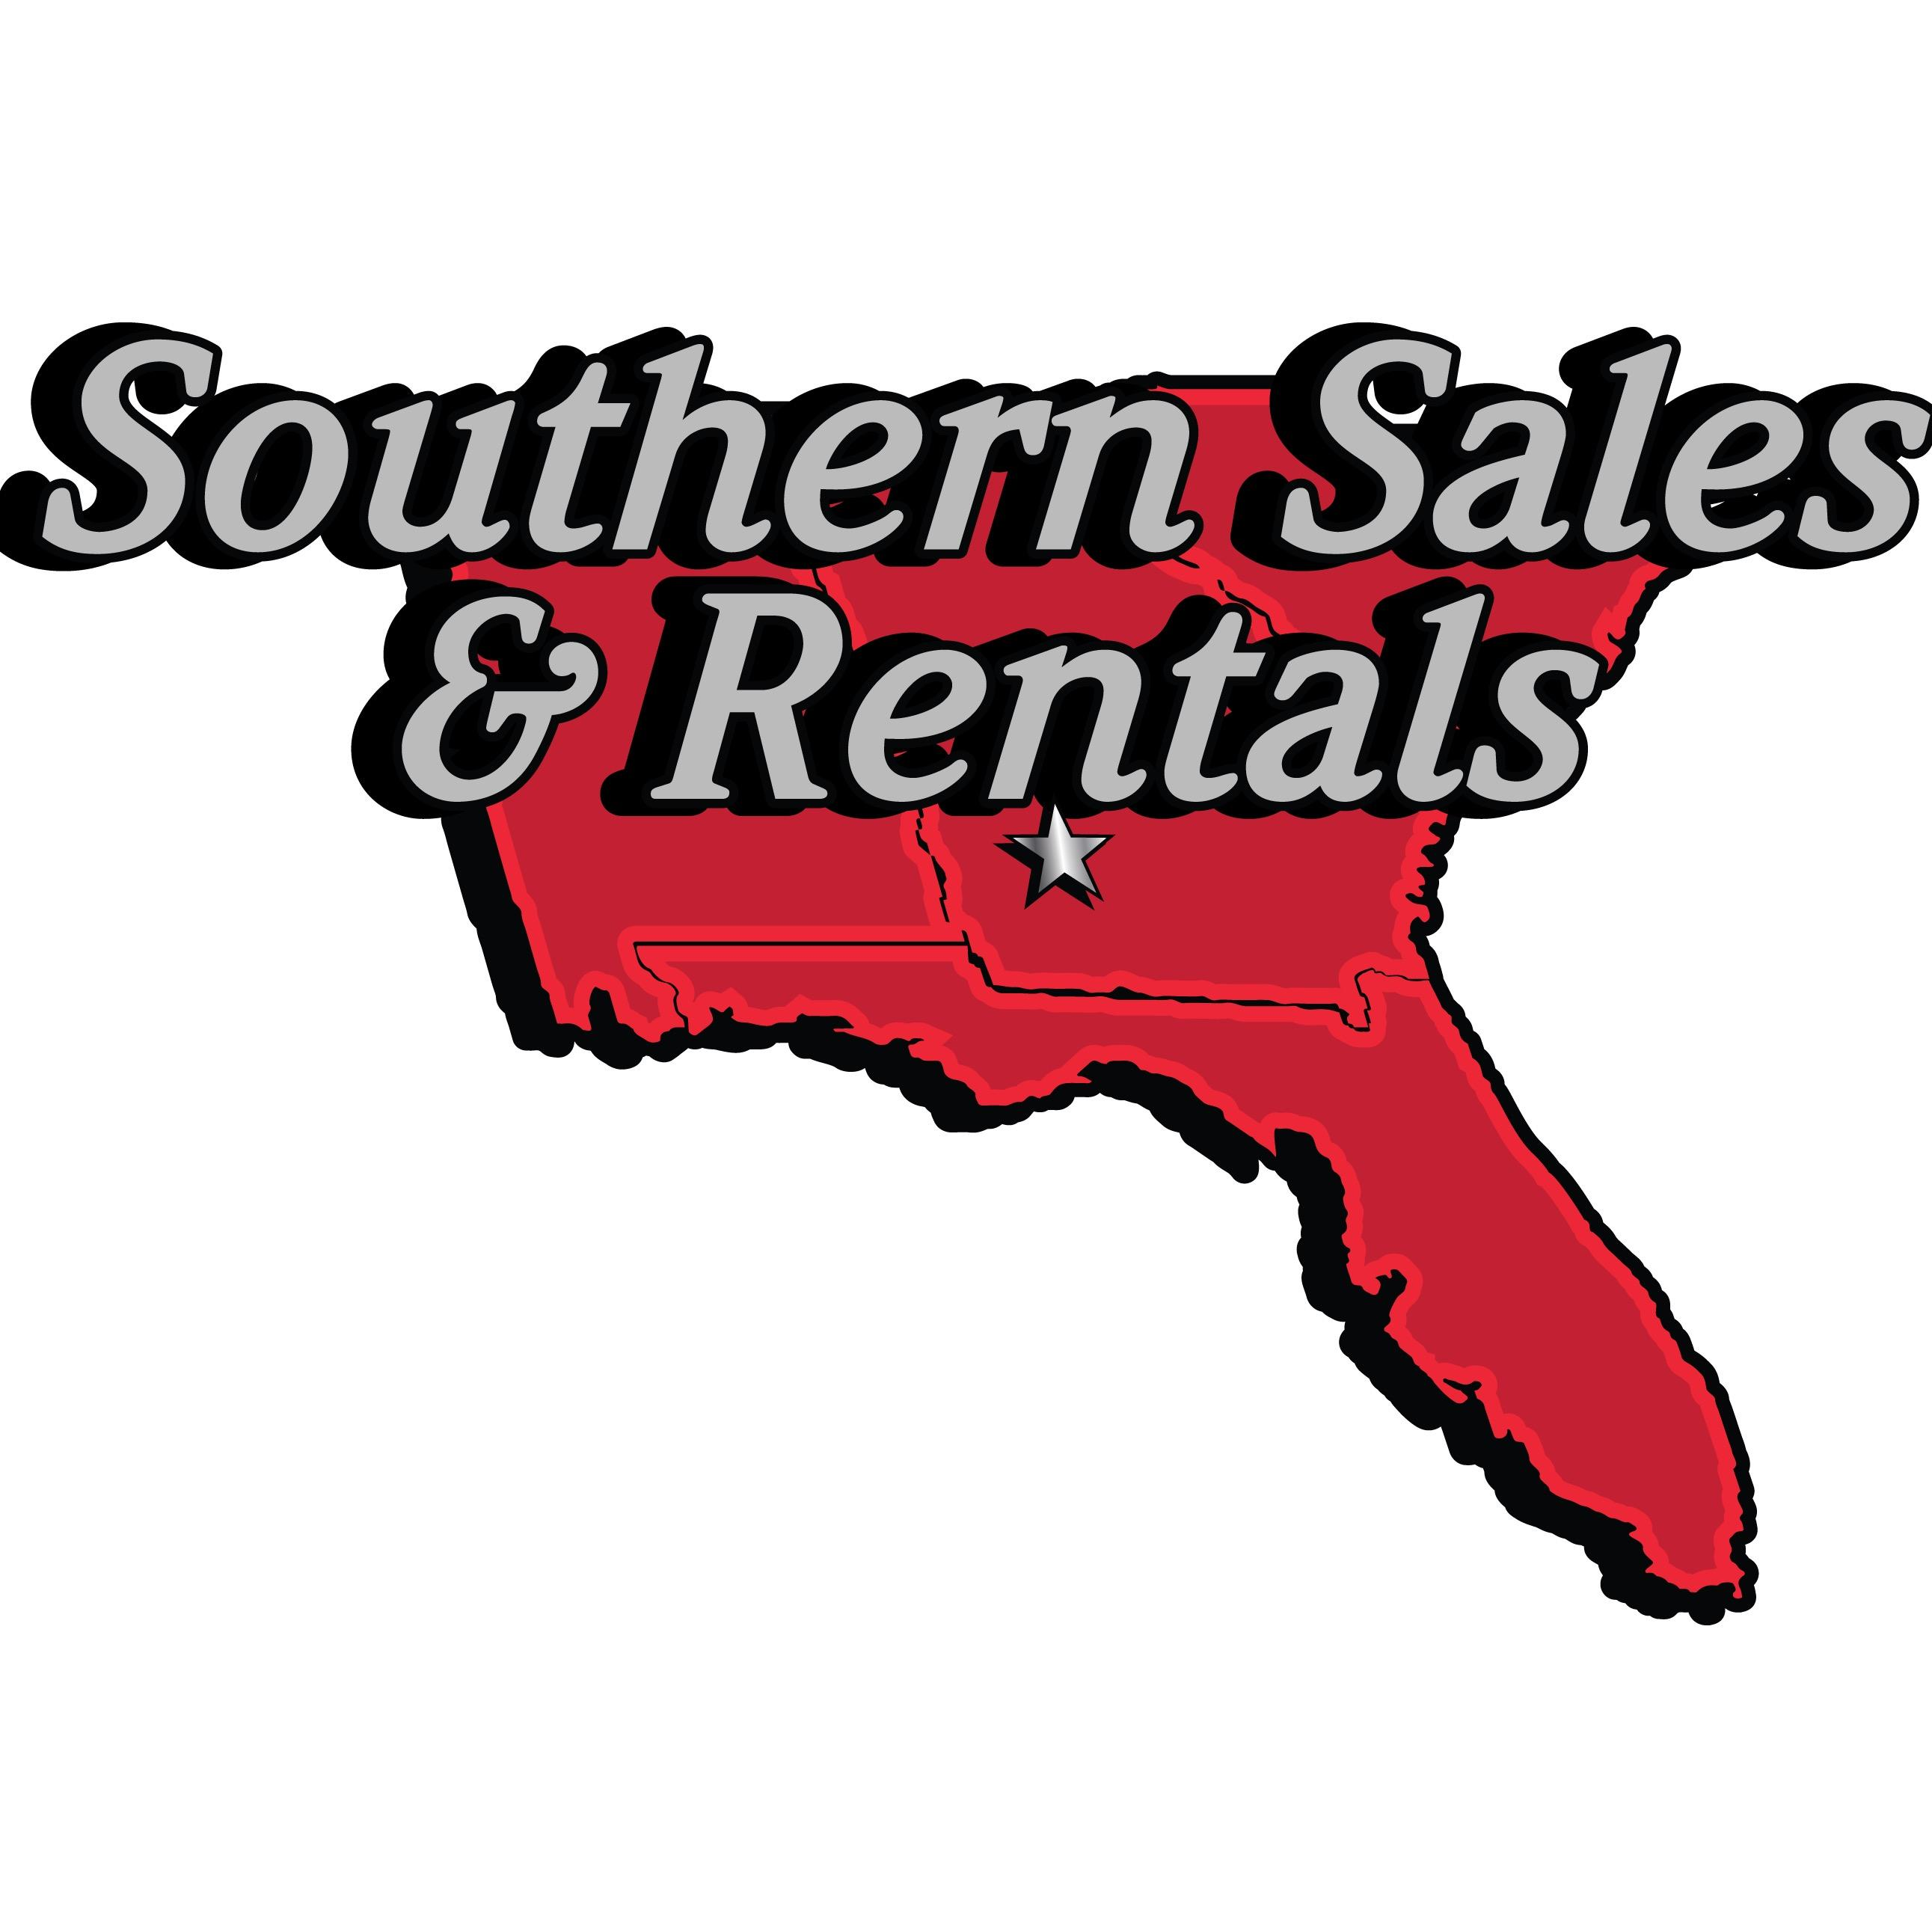 Southern Sales & Rentals